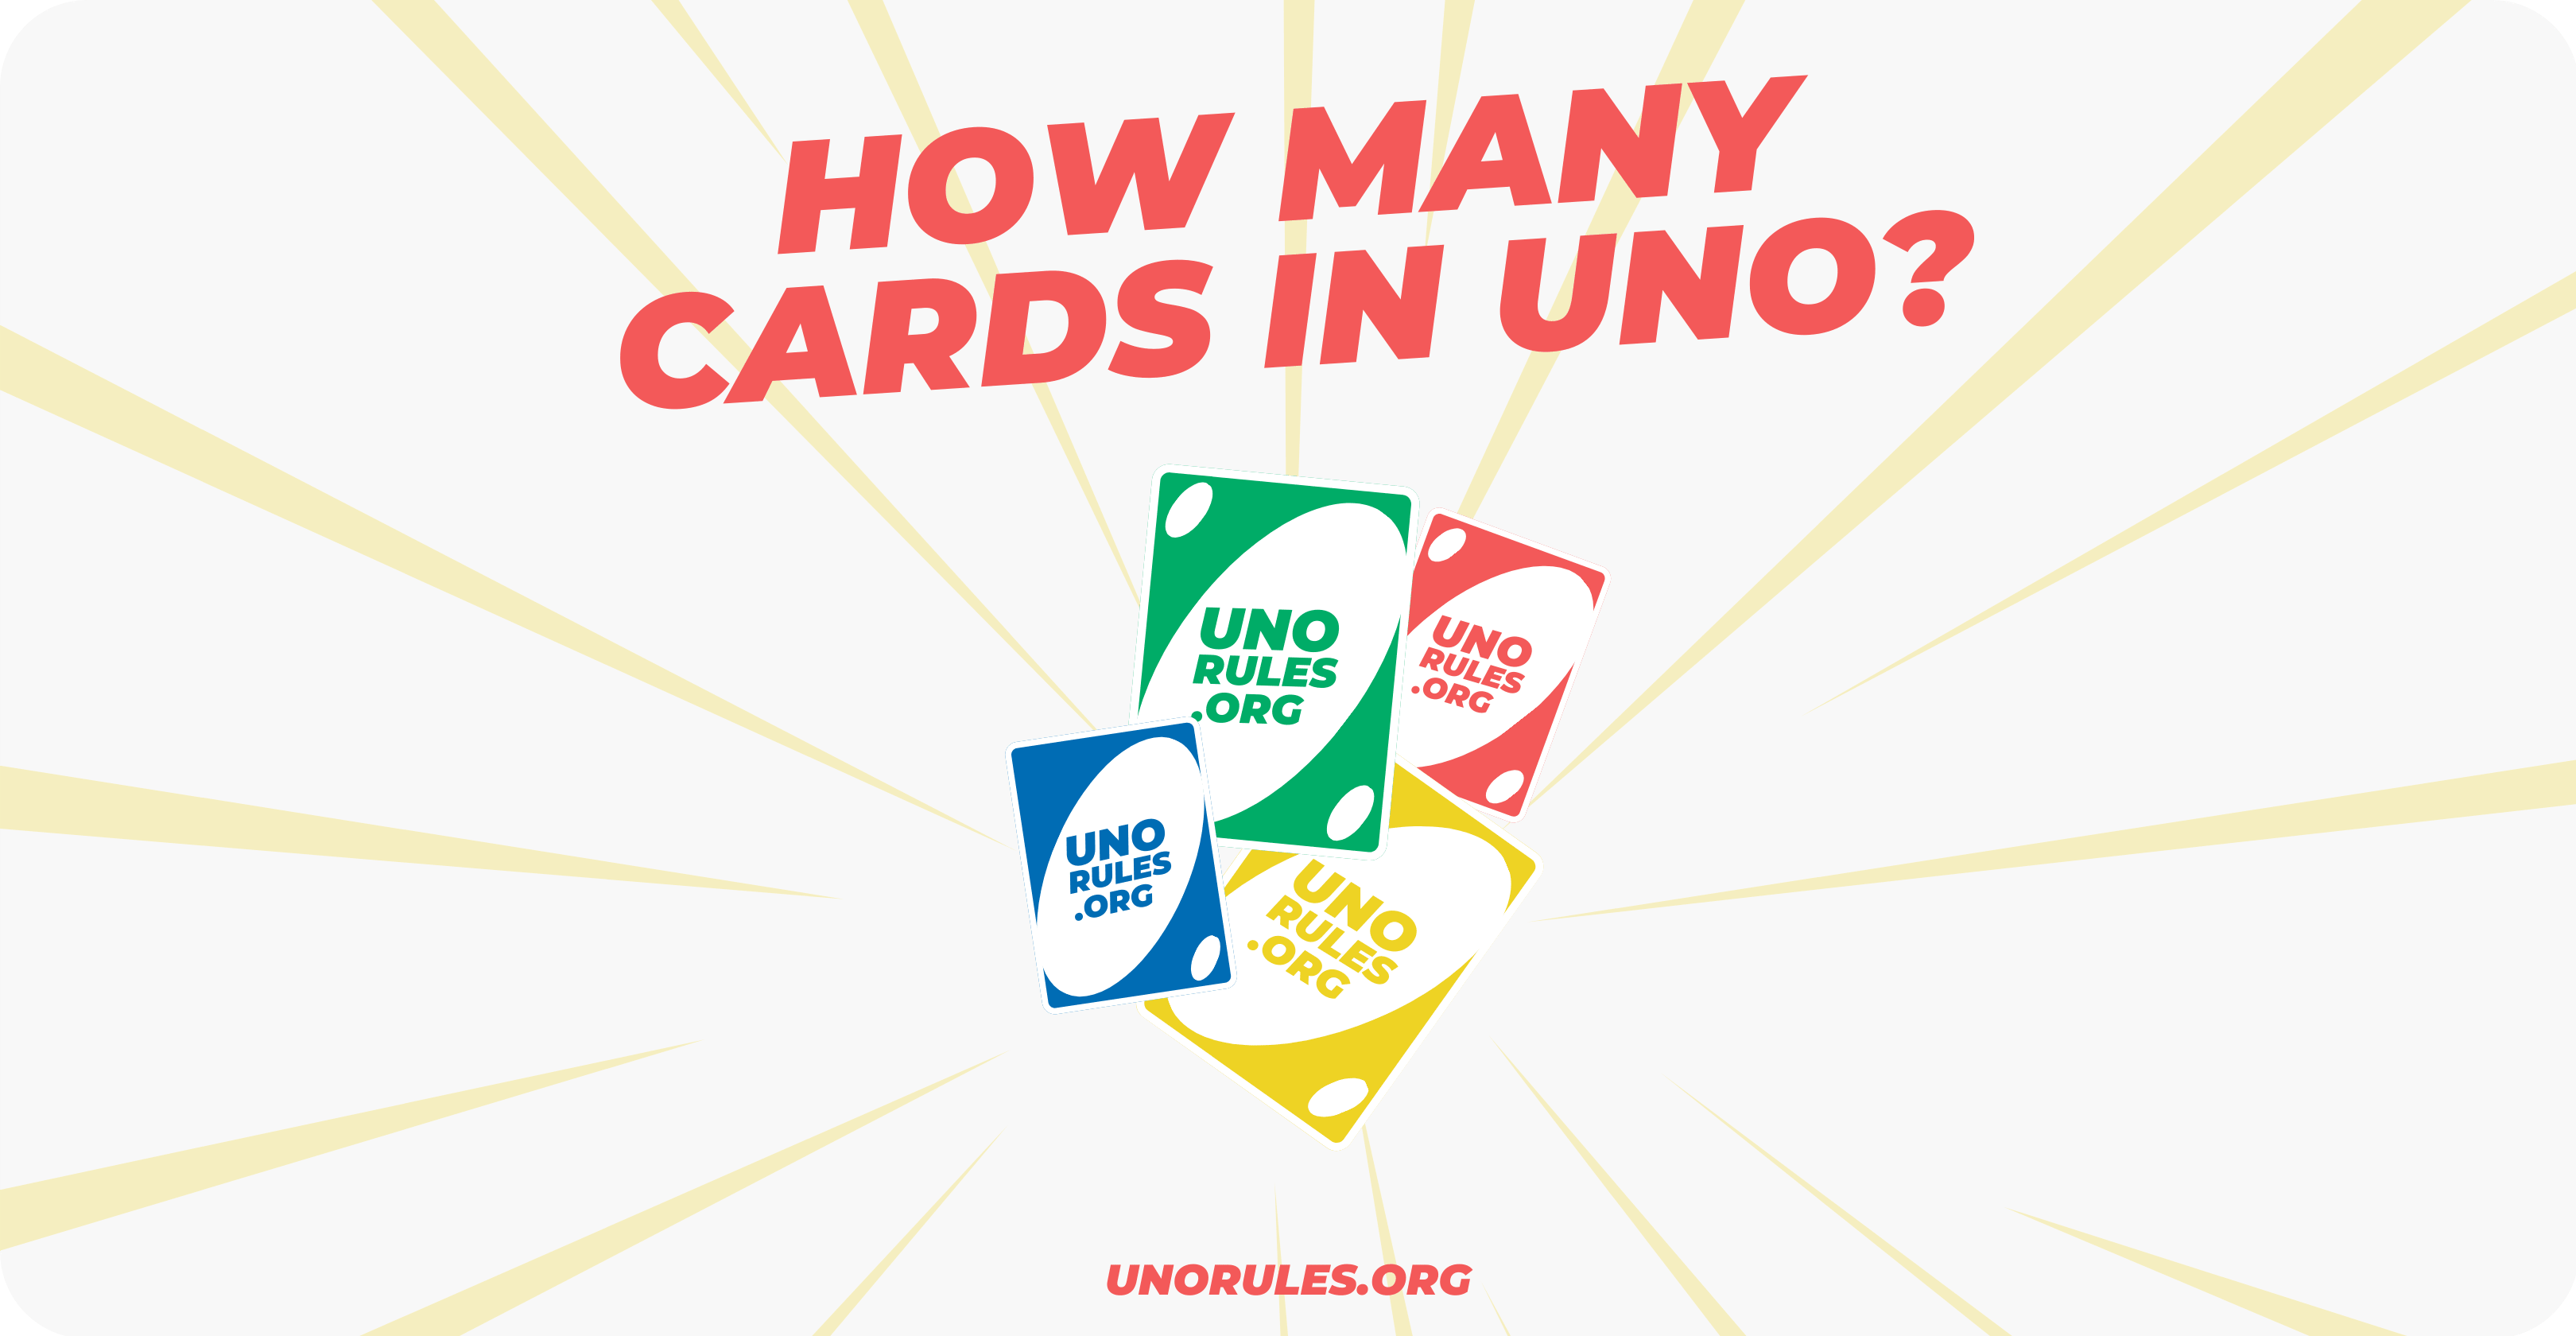 How many cards in Uno?